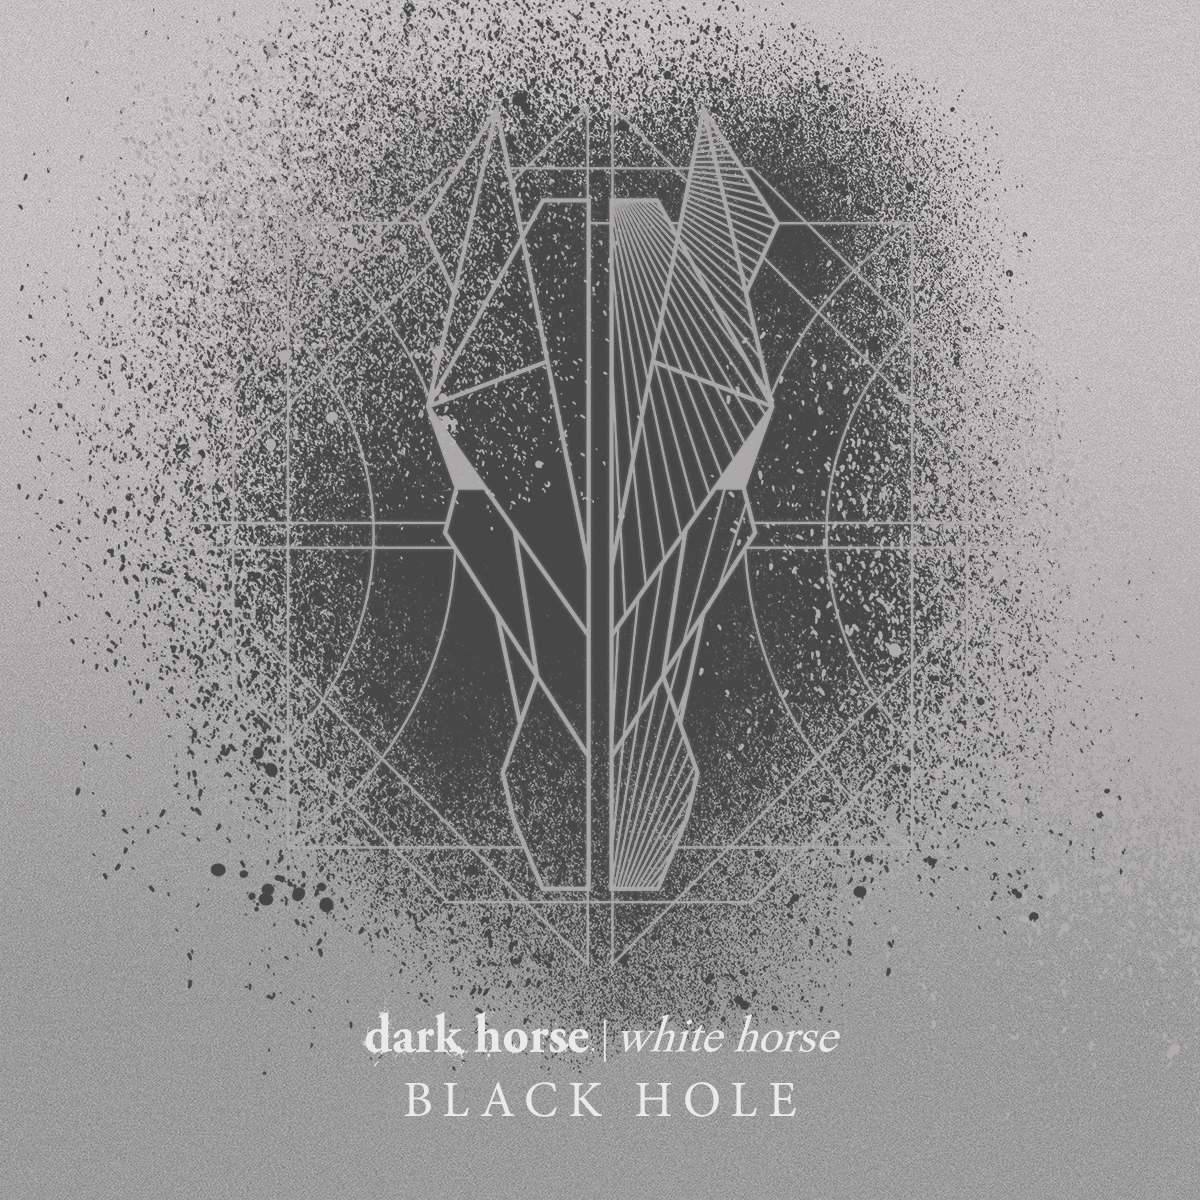 Dark Horse White Horse premiere: 'Black Hole'